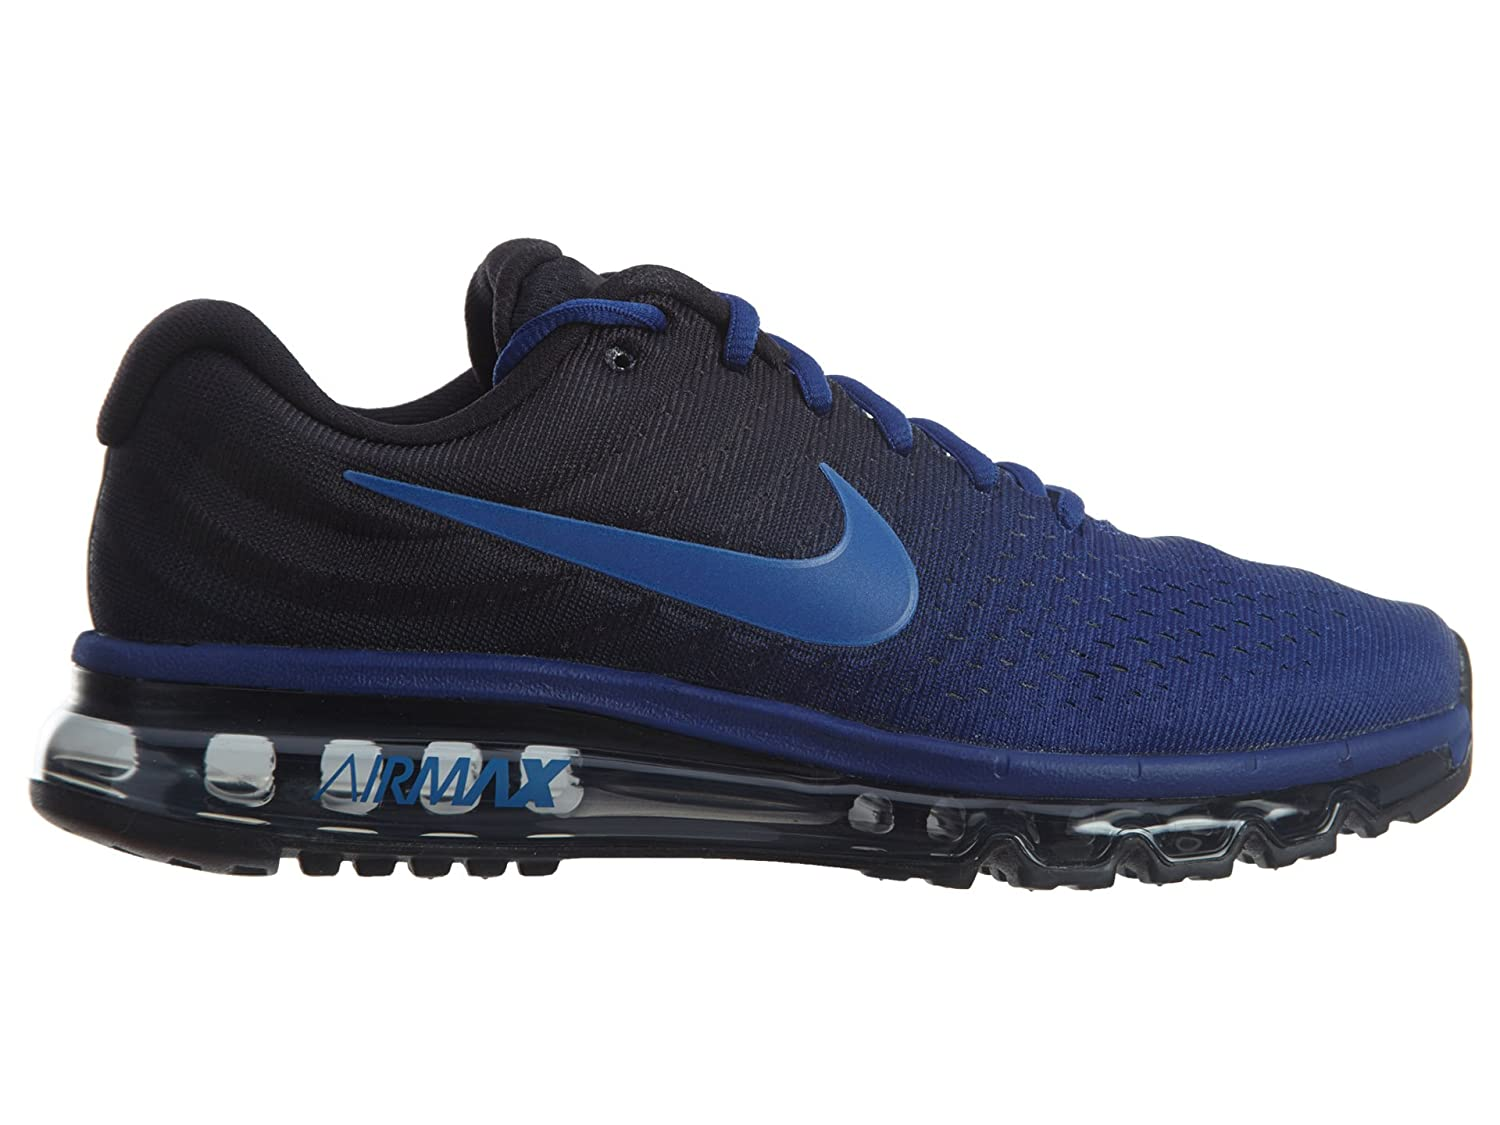 8009445f68 Nike Men s Air Max 2017 Running Shoe Deep Royal Blue/Hyper Cobalt/Black 9  D(M) US: Buy Online at Low Prices in India - Amazon.in